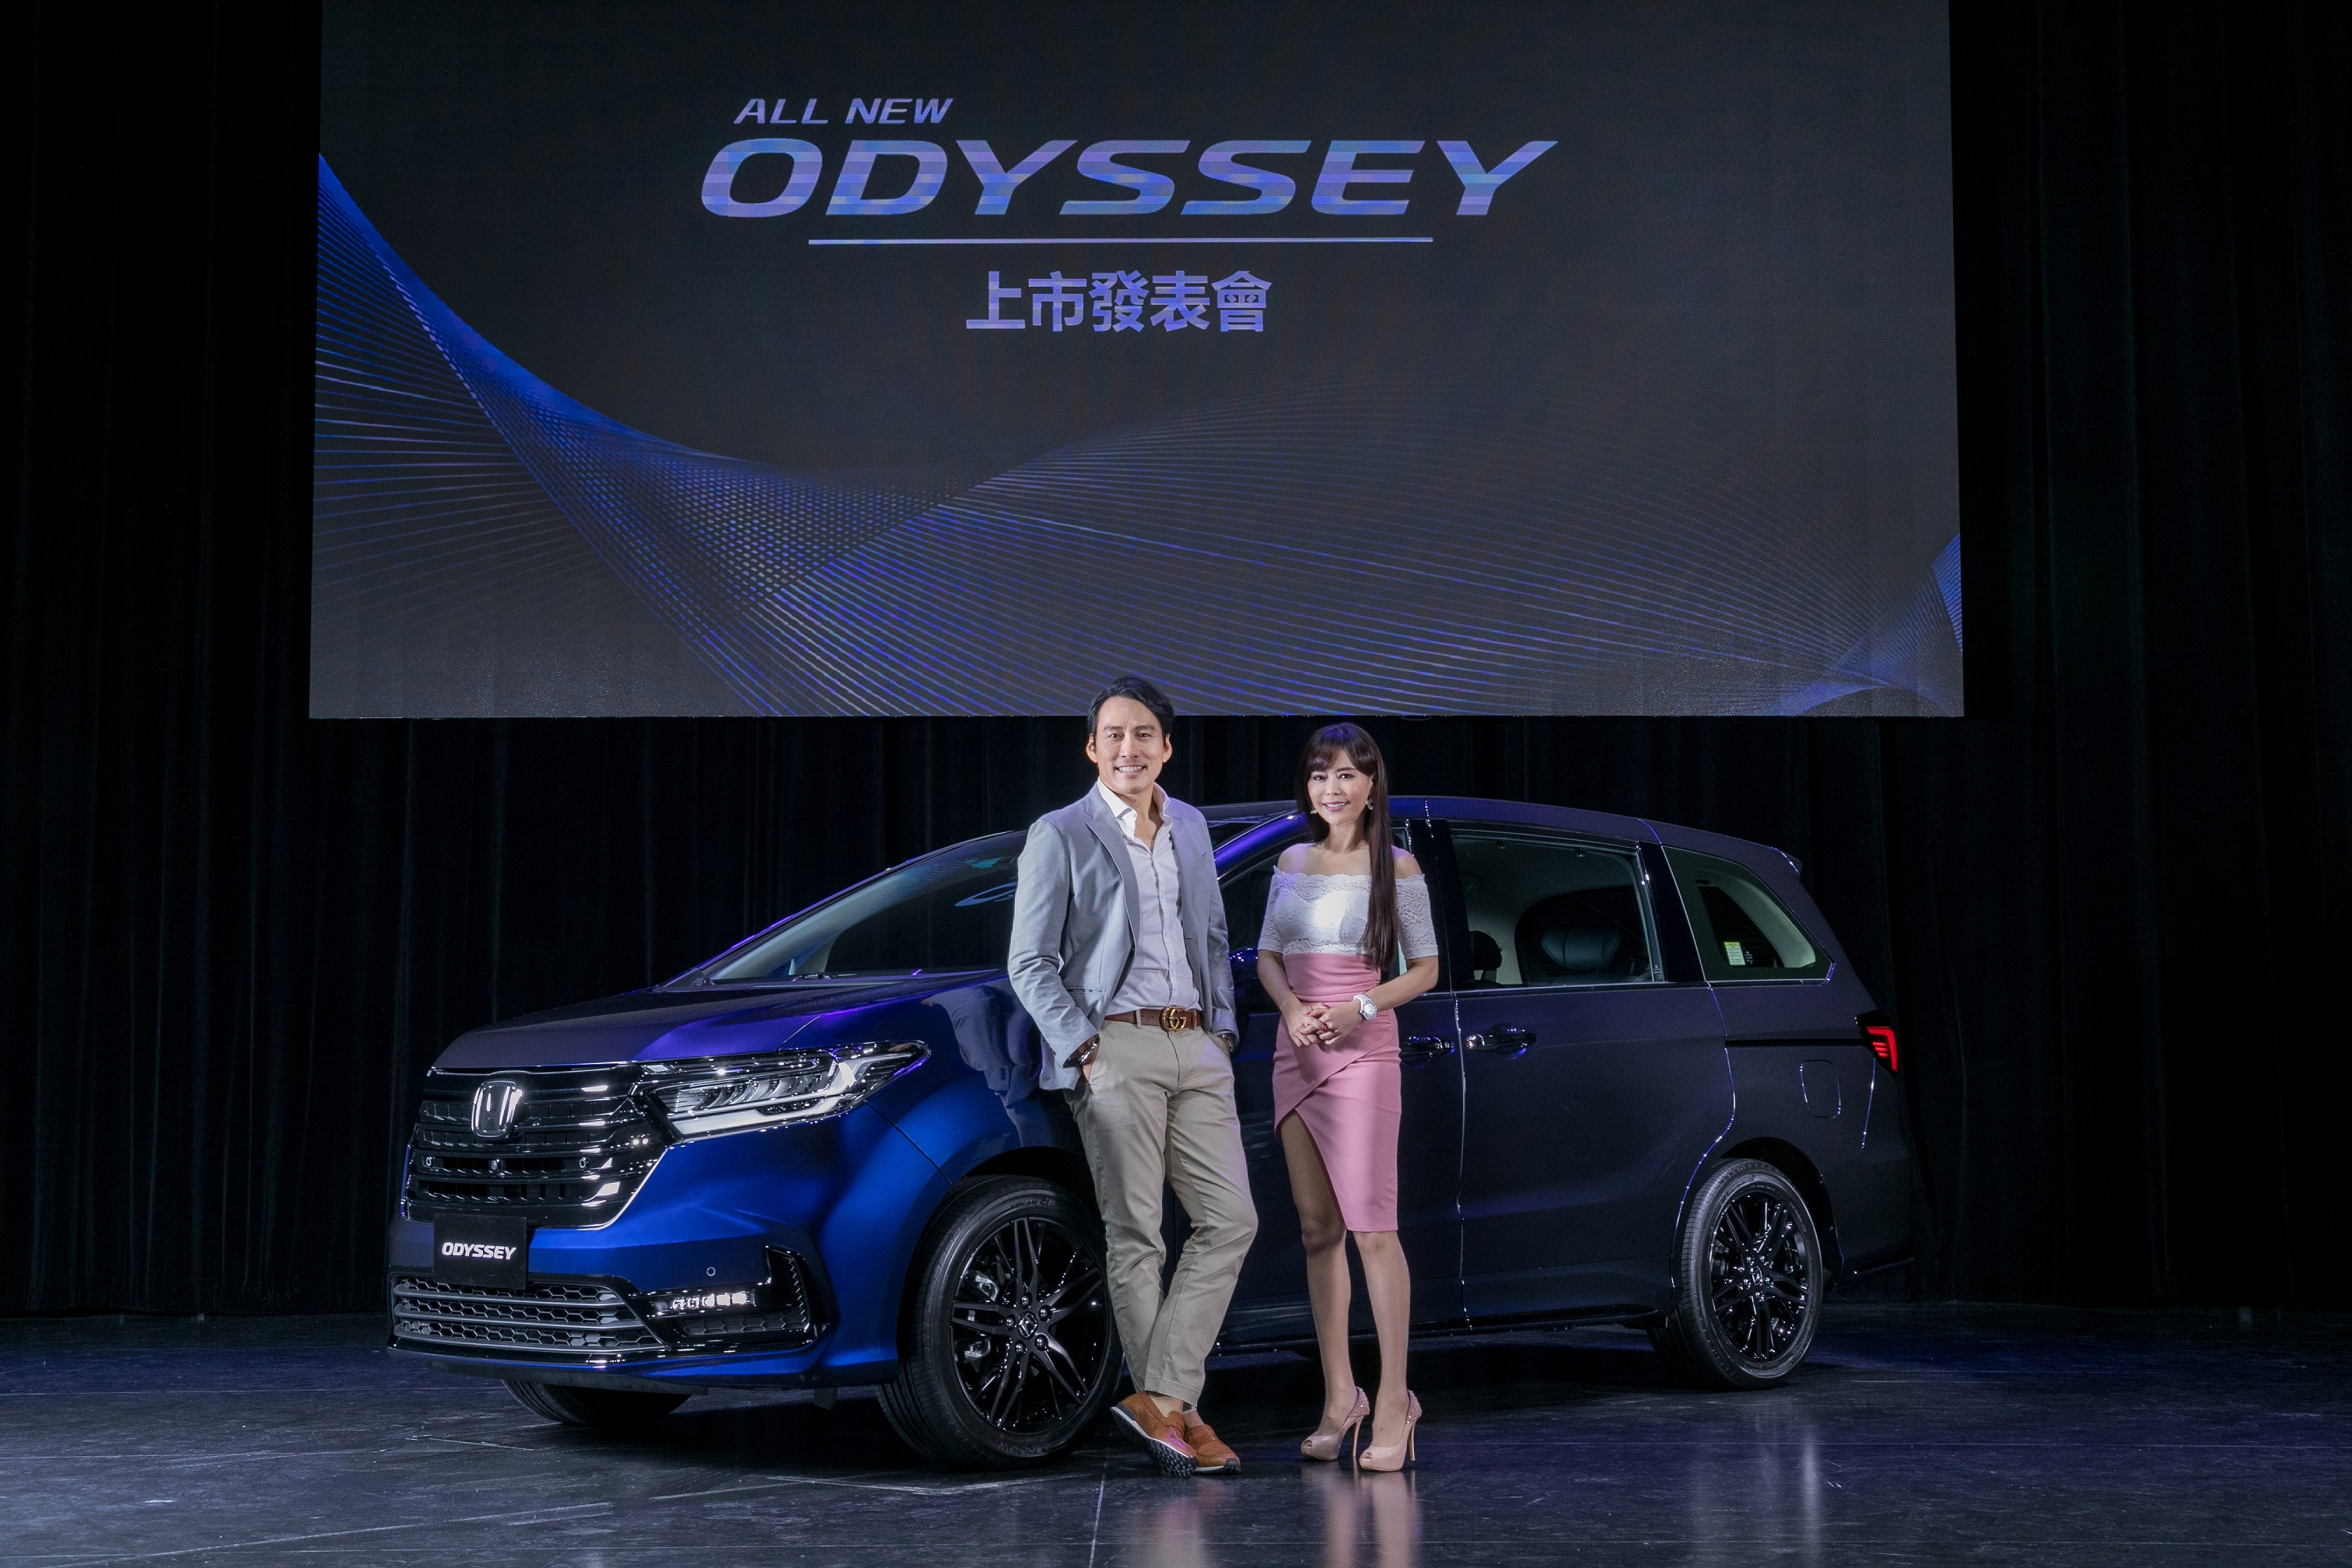 ALL NEW ODYSSEY_Photo call 7.jpg